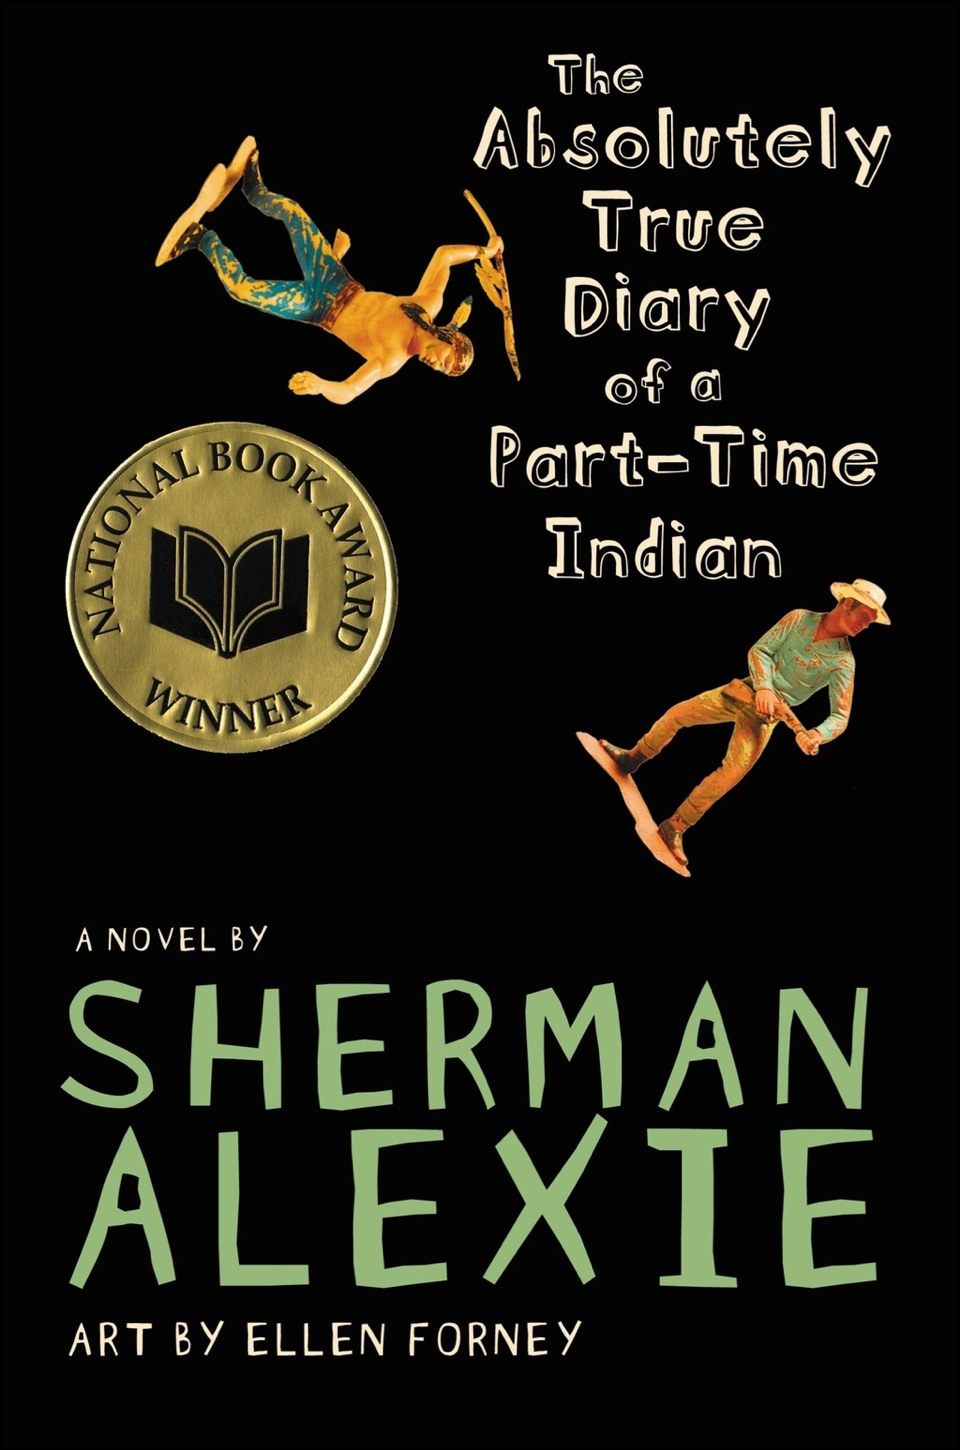 Absolutely True Story of a Part Time Indian by Sherman Alexie